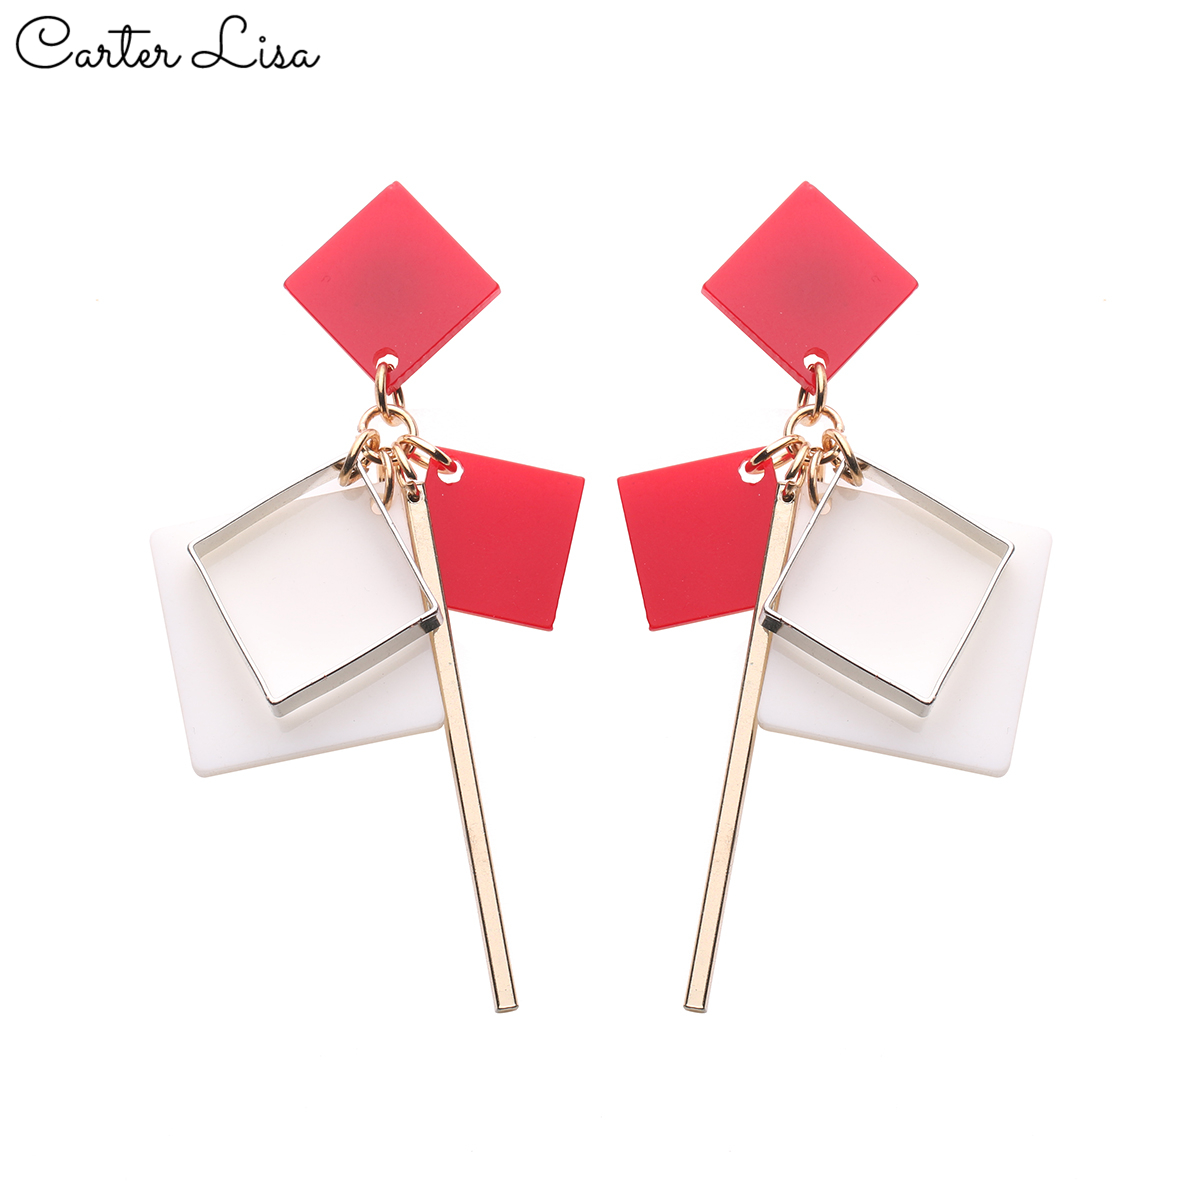 CARTER LISA 2019 New Hot Fashion Women's Bohemian Multicolor Geometric Rectangular  Earrings Earrings OL Jewelry HDEA-070